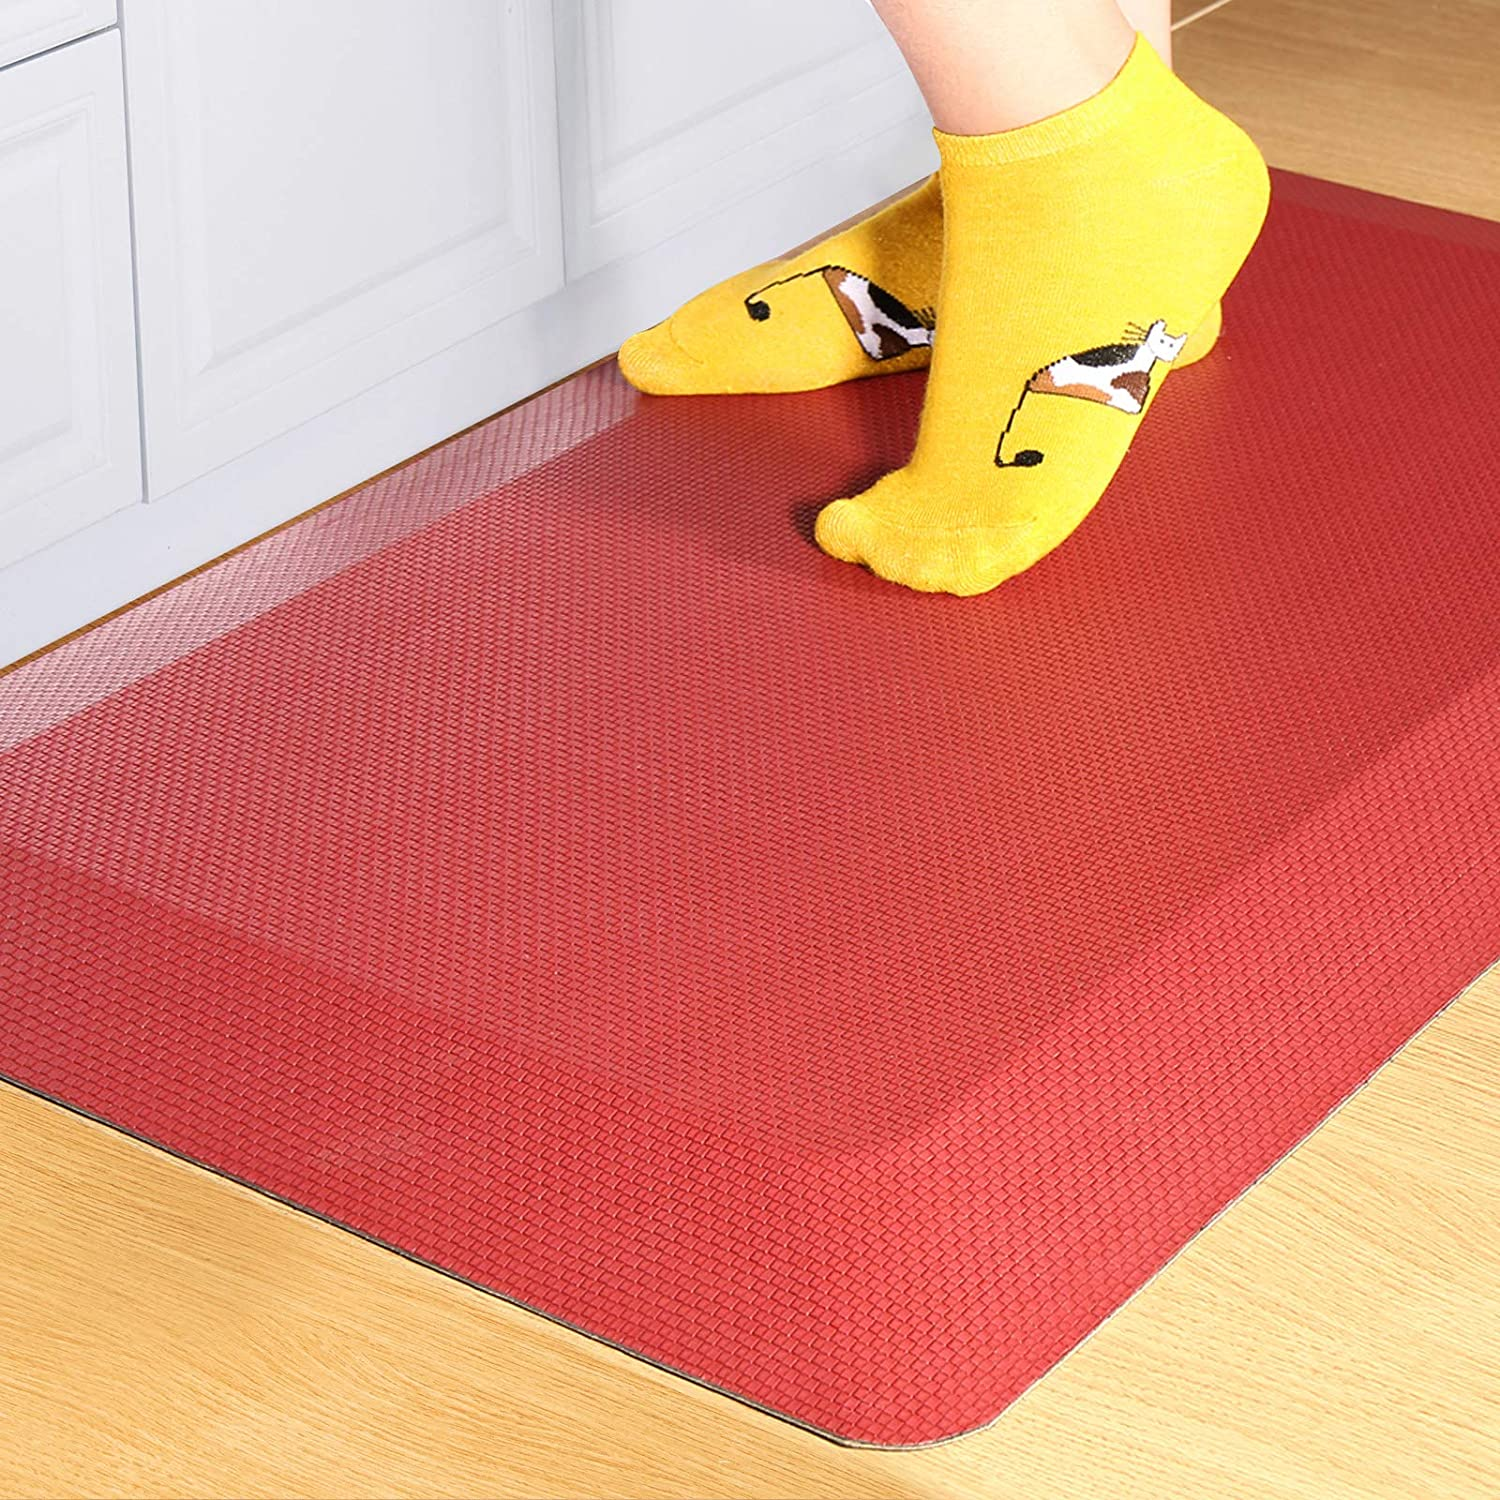 Anti Fatigue Mat Kitchen Mats Cushioned,Thicken Core Foam 20x32x9/10-Inch,Perfect for Kitchens,Standing Desks and Garages,Phthalate Free,Relieves Foot,Knee,and Back Pain(Red,20